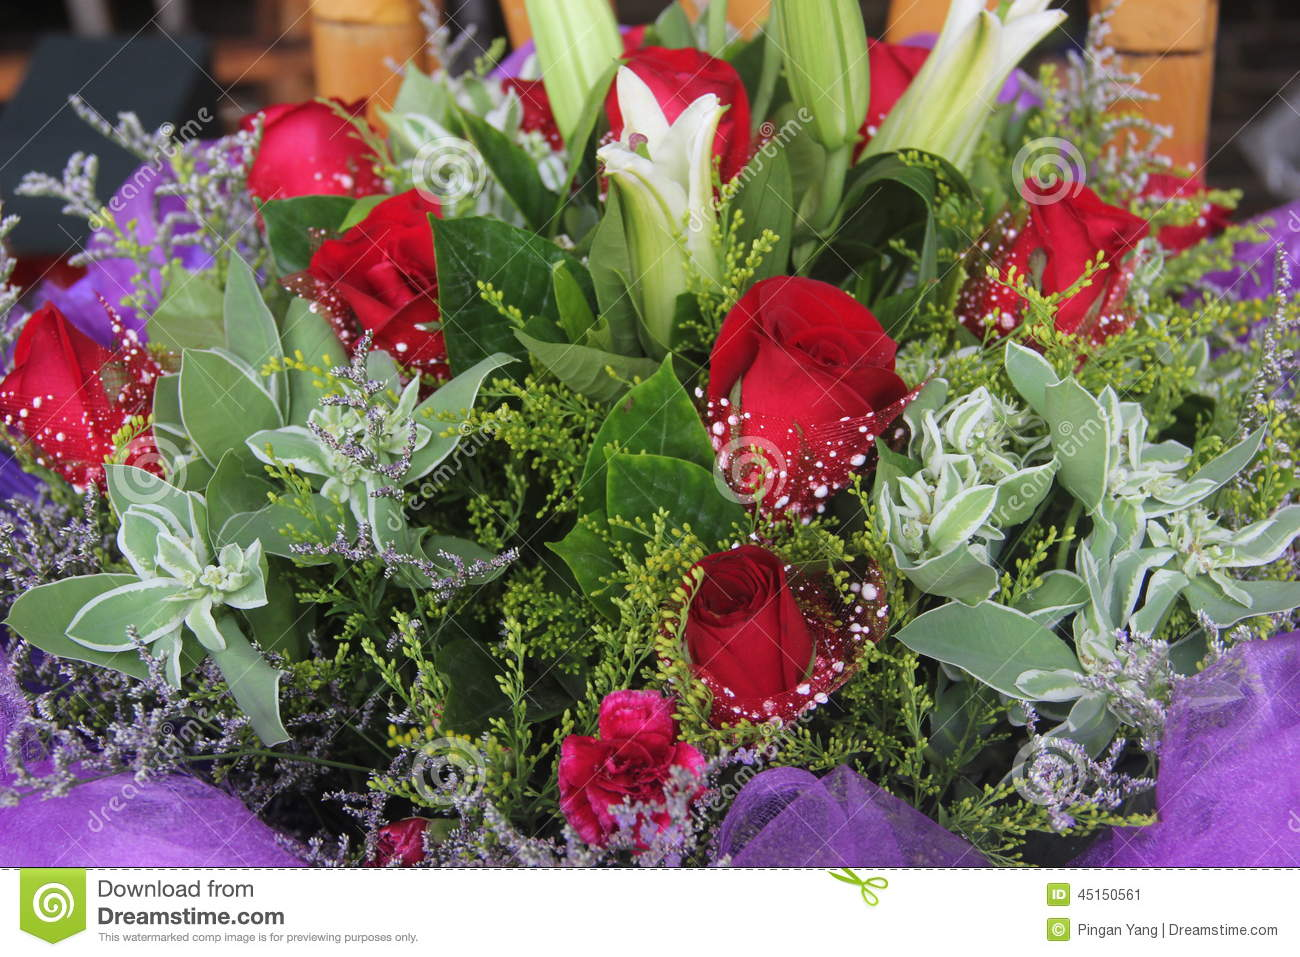 Lilies And Roses In The Flower Shop Stock Image Image Of Beautiful